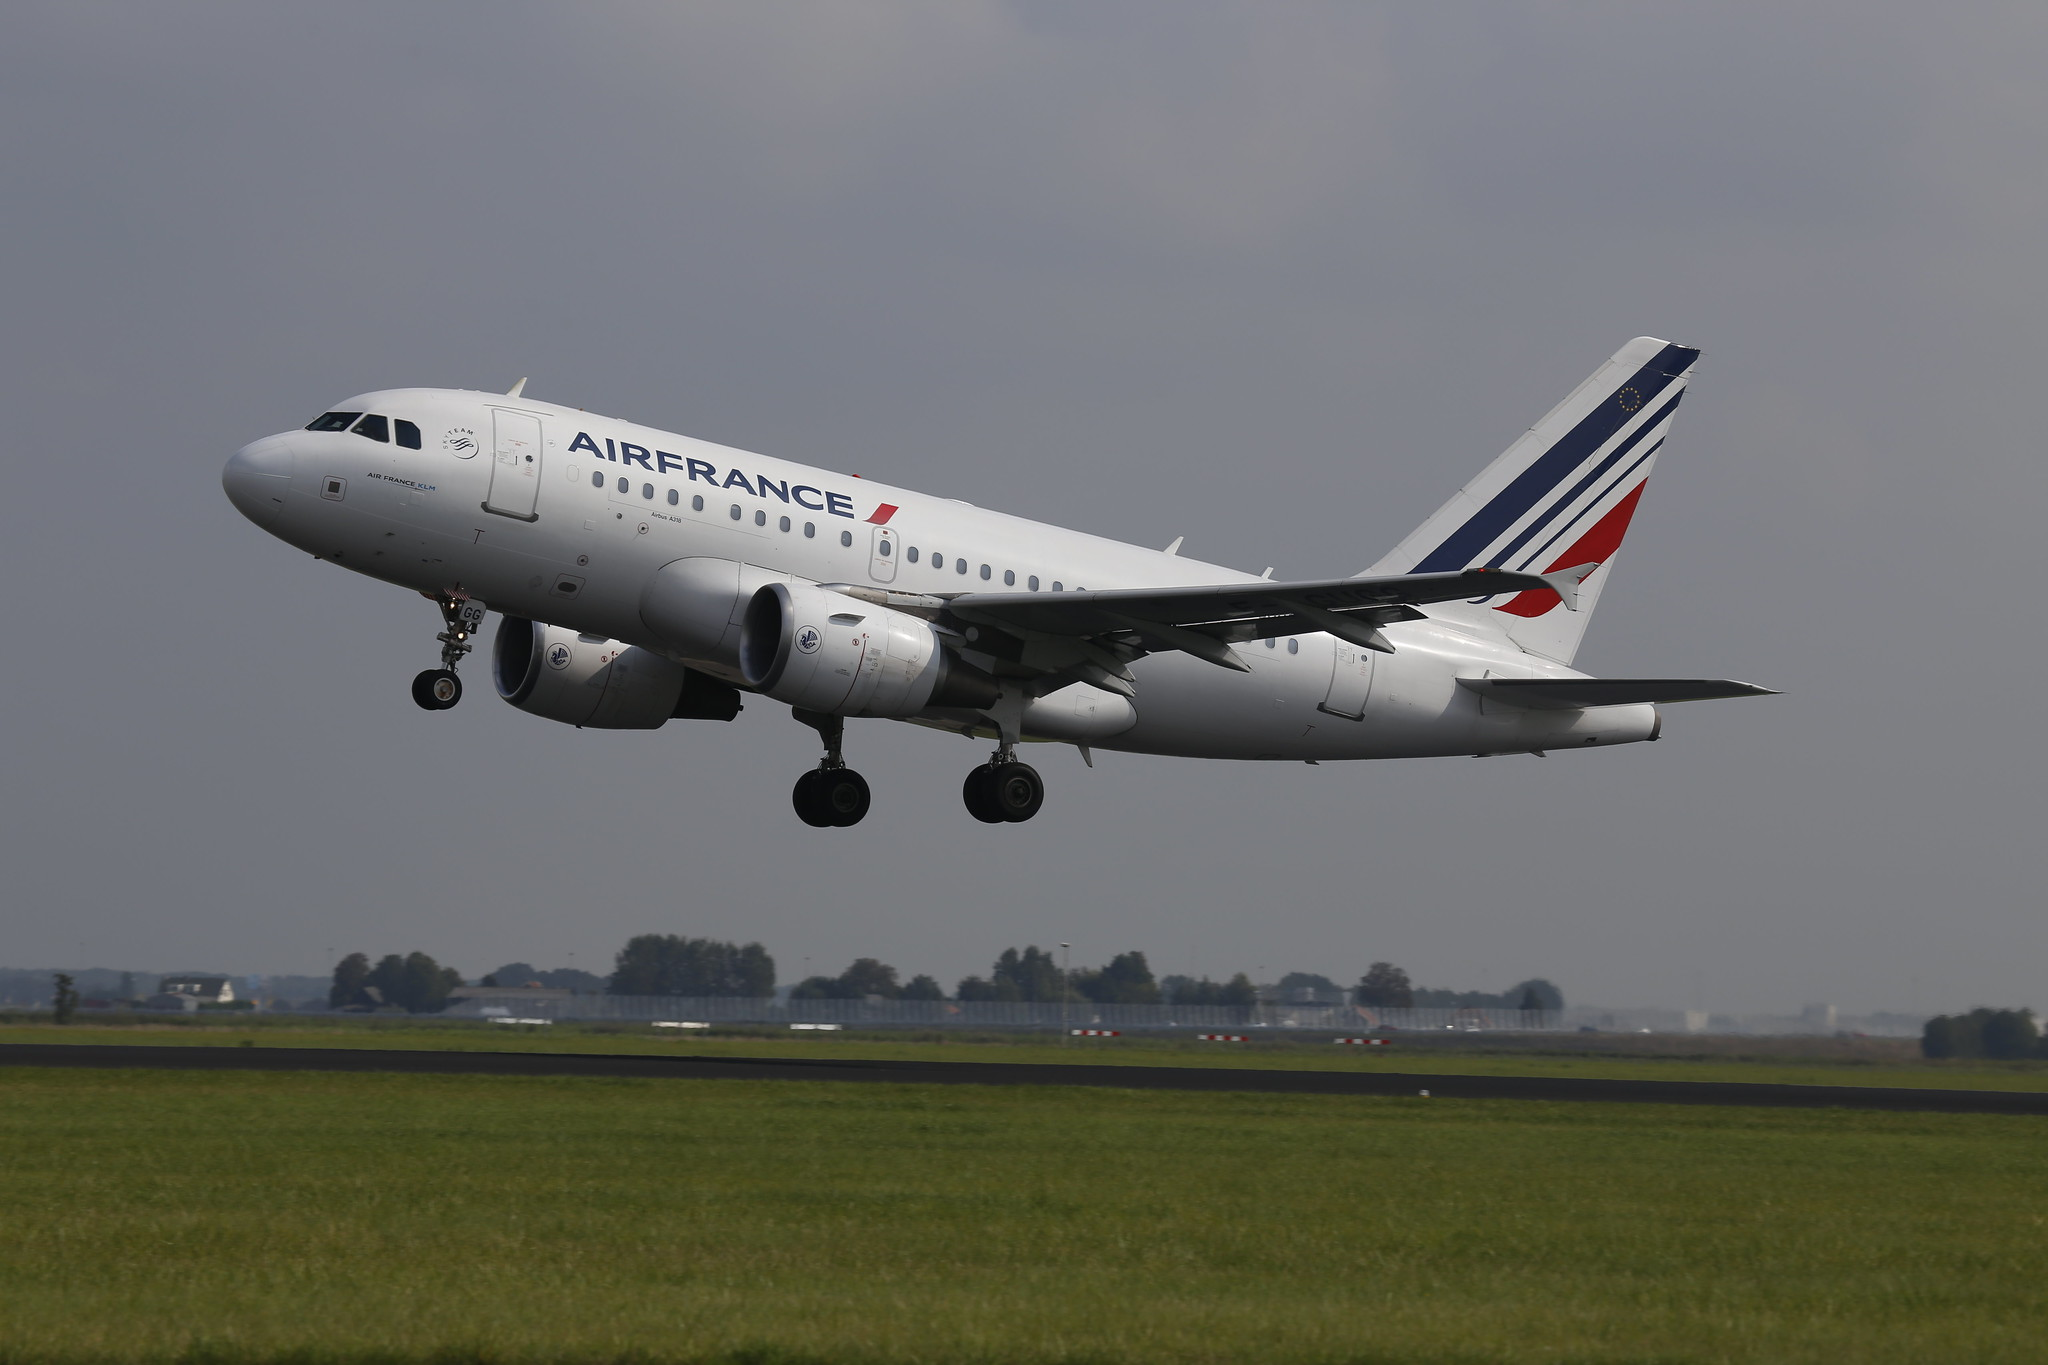 Air France A318 - F-GUGG